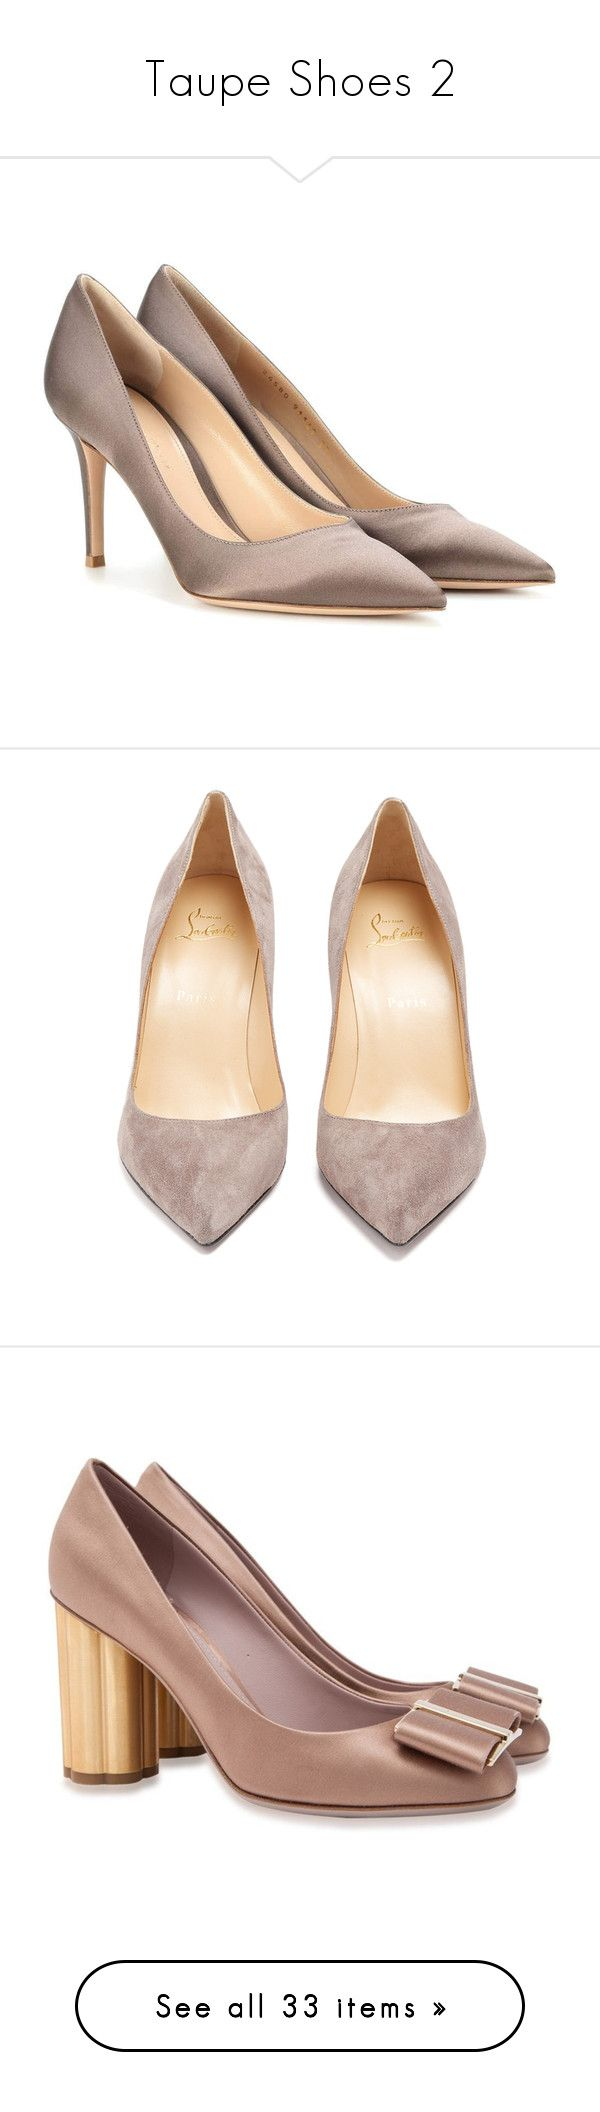 """Taupe Shoes 2"" by franceseattle ❤ liked on Polyvore featuring shoes, pumps, grey, grey satin shoes, gray shoes, gianvito rossi pumps, gianvito rossi, grey shoes, pointed toe high heels stilettos and pointed toe stilettos"